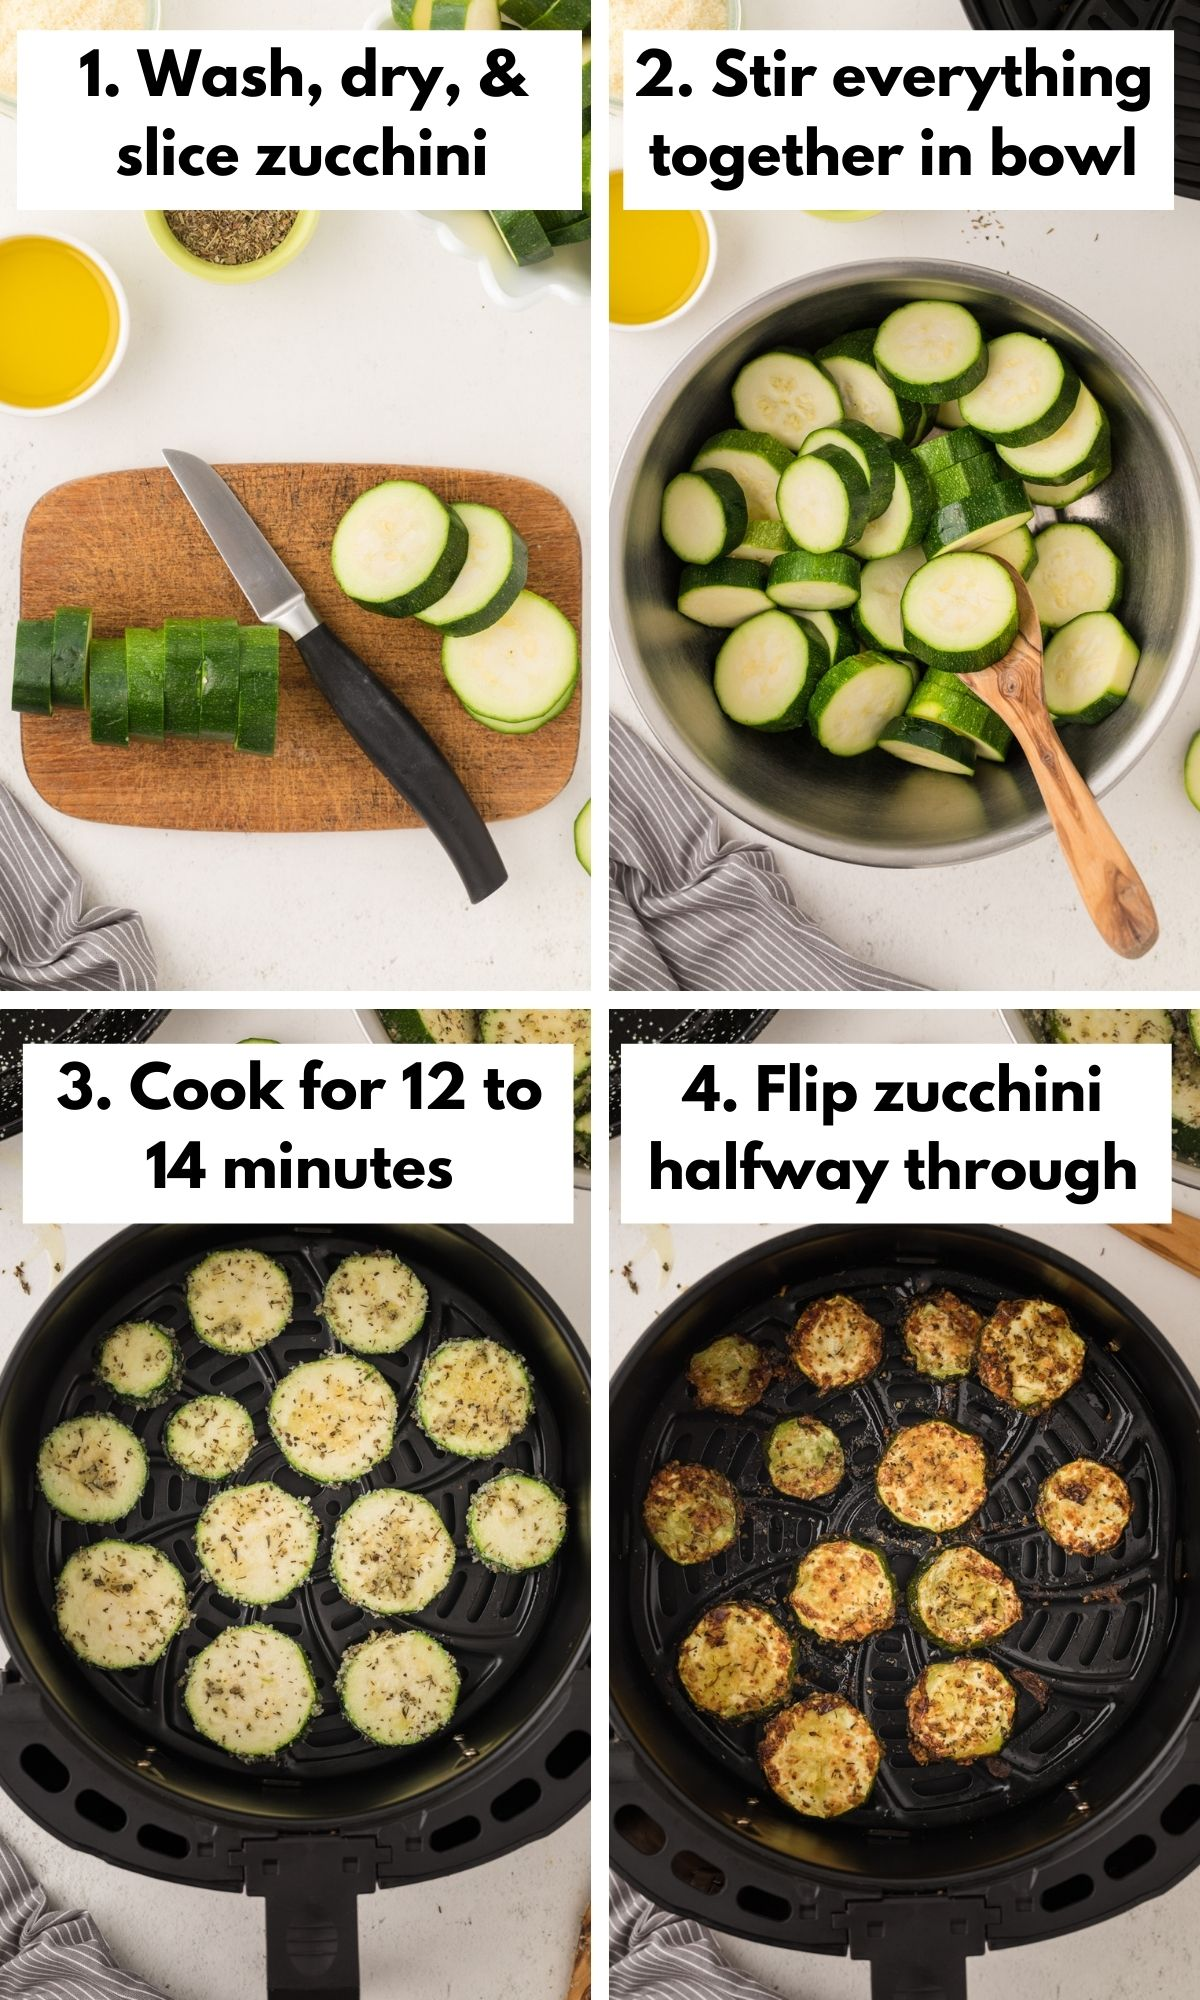 How to make zucchini chips in the air fryer